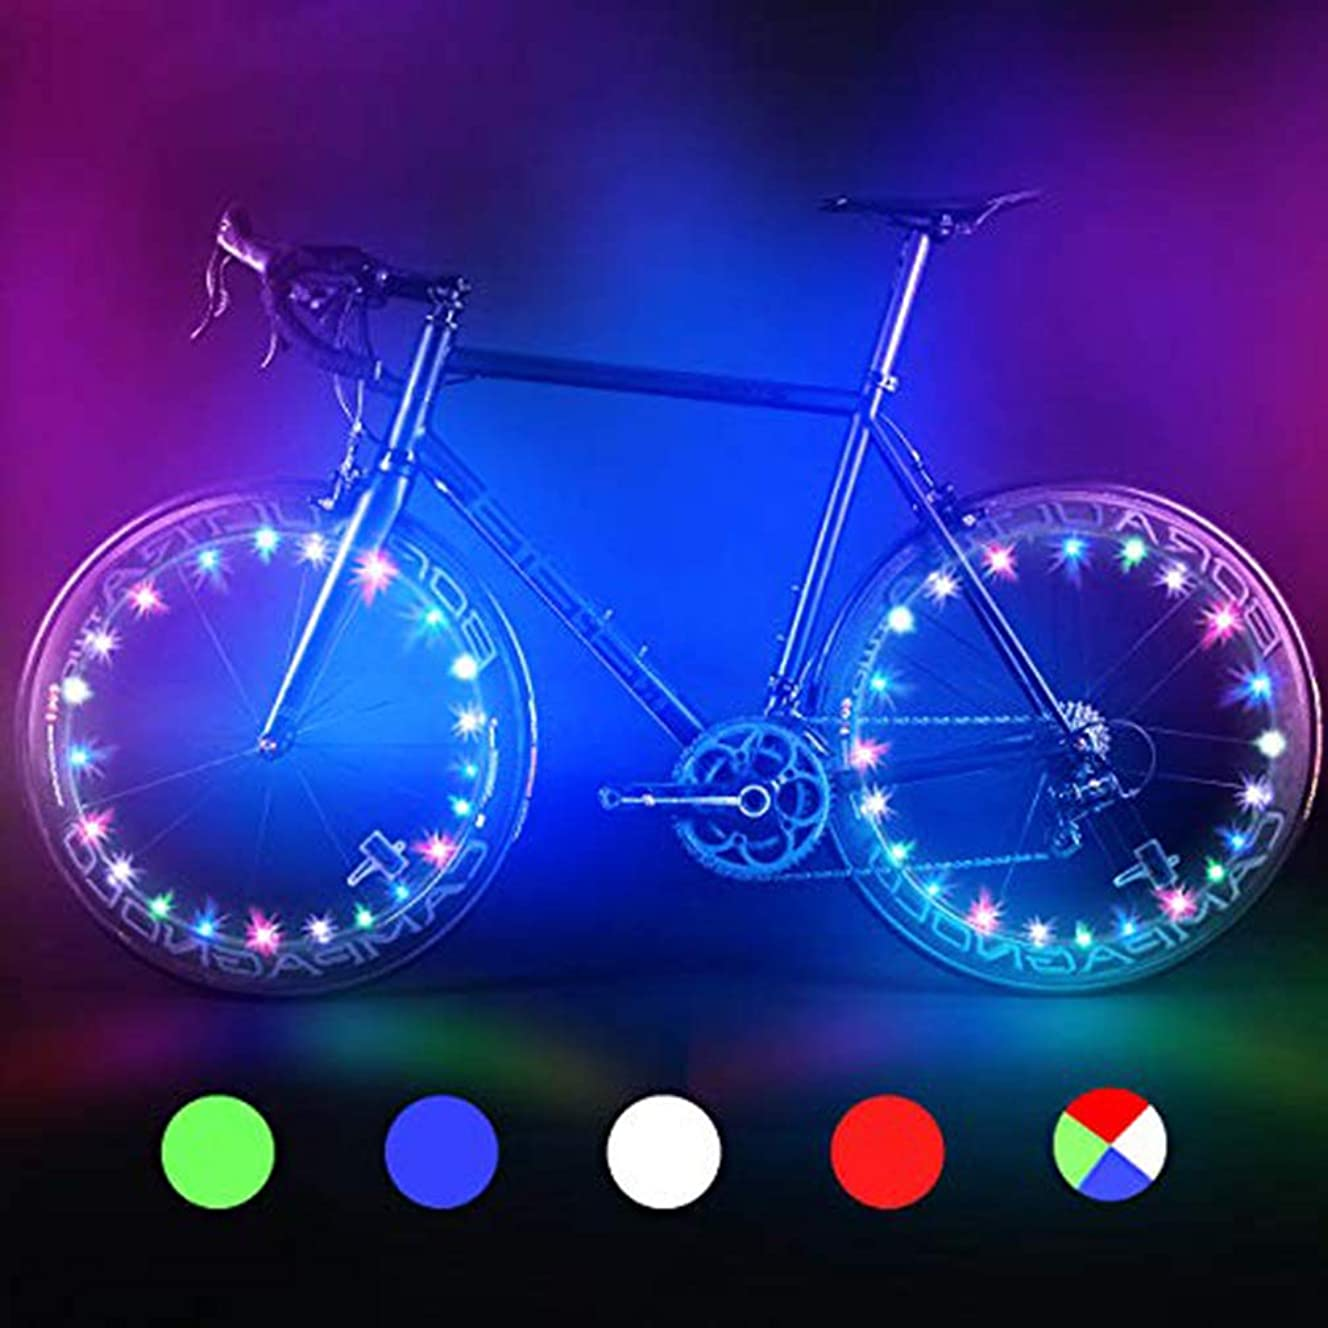 Bodyguard LED Bike Wheel Lights, Automatic and Manual Lighting, Waterproof Bicycle Wheel Light String with Batteries Included, Ultra Bright (1Pack)